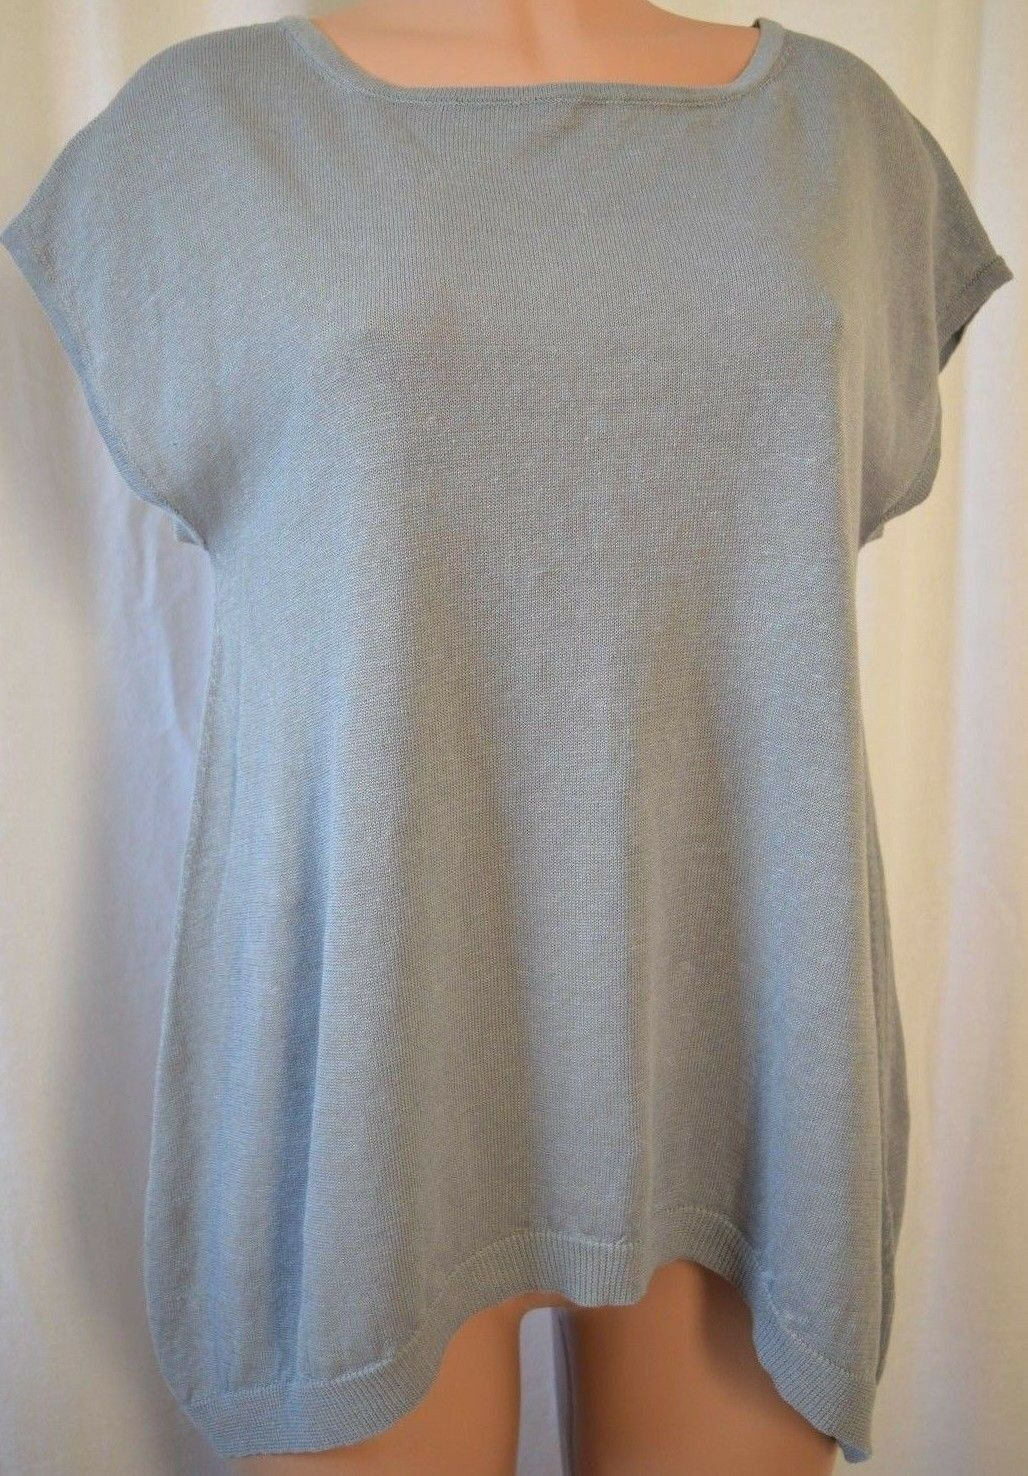 PESERICO TRICOT COTTON SHORT SLEEVES KNIT WITH TINY CHAIN APPLIQUE TOP SZ 46-48